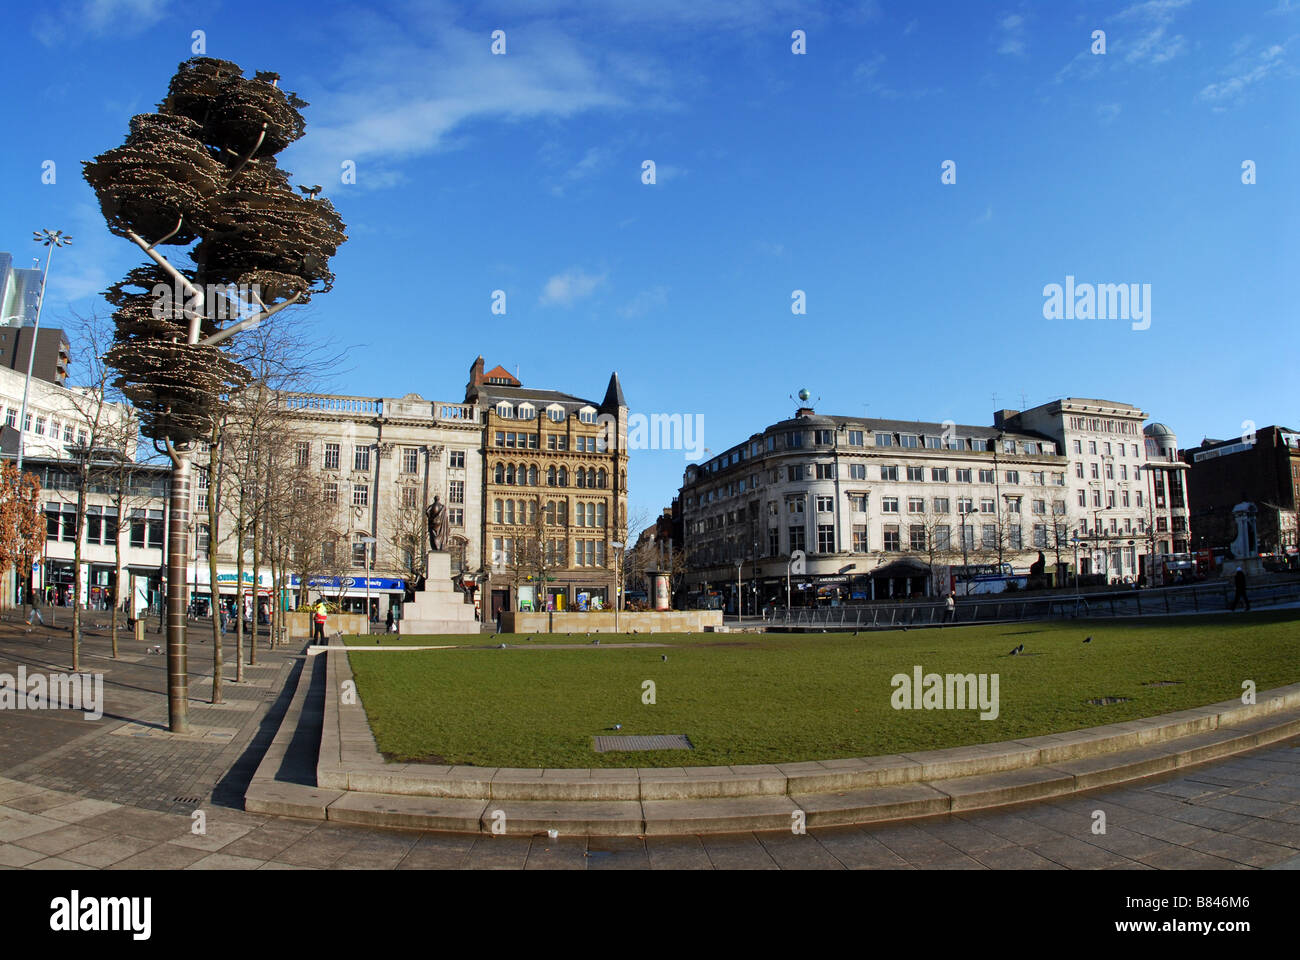 Piccadilly Gardens Manchester - Stock Image